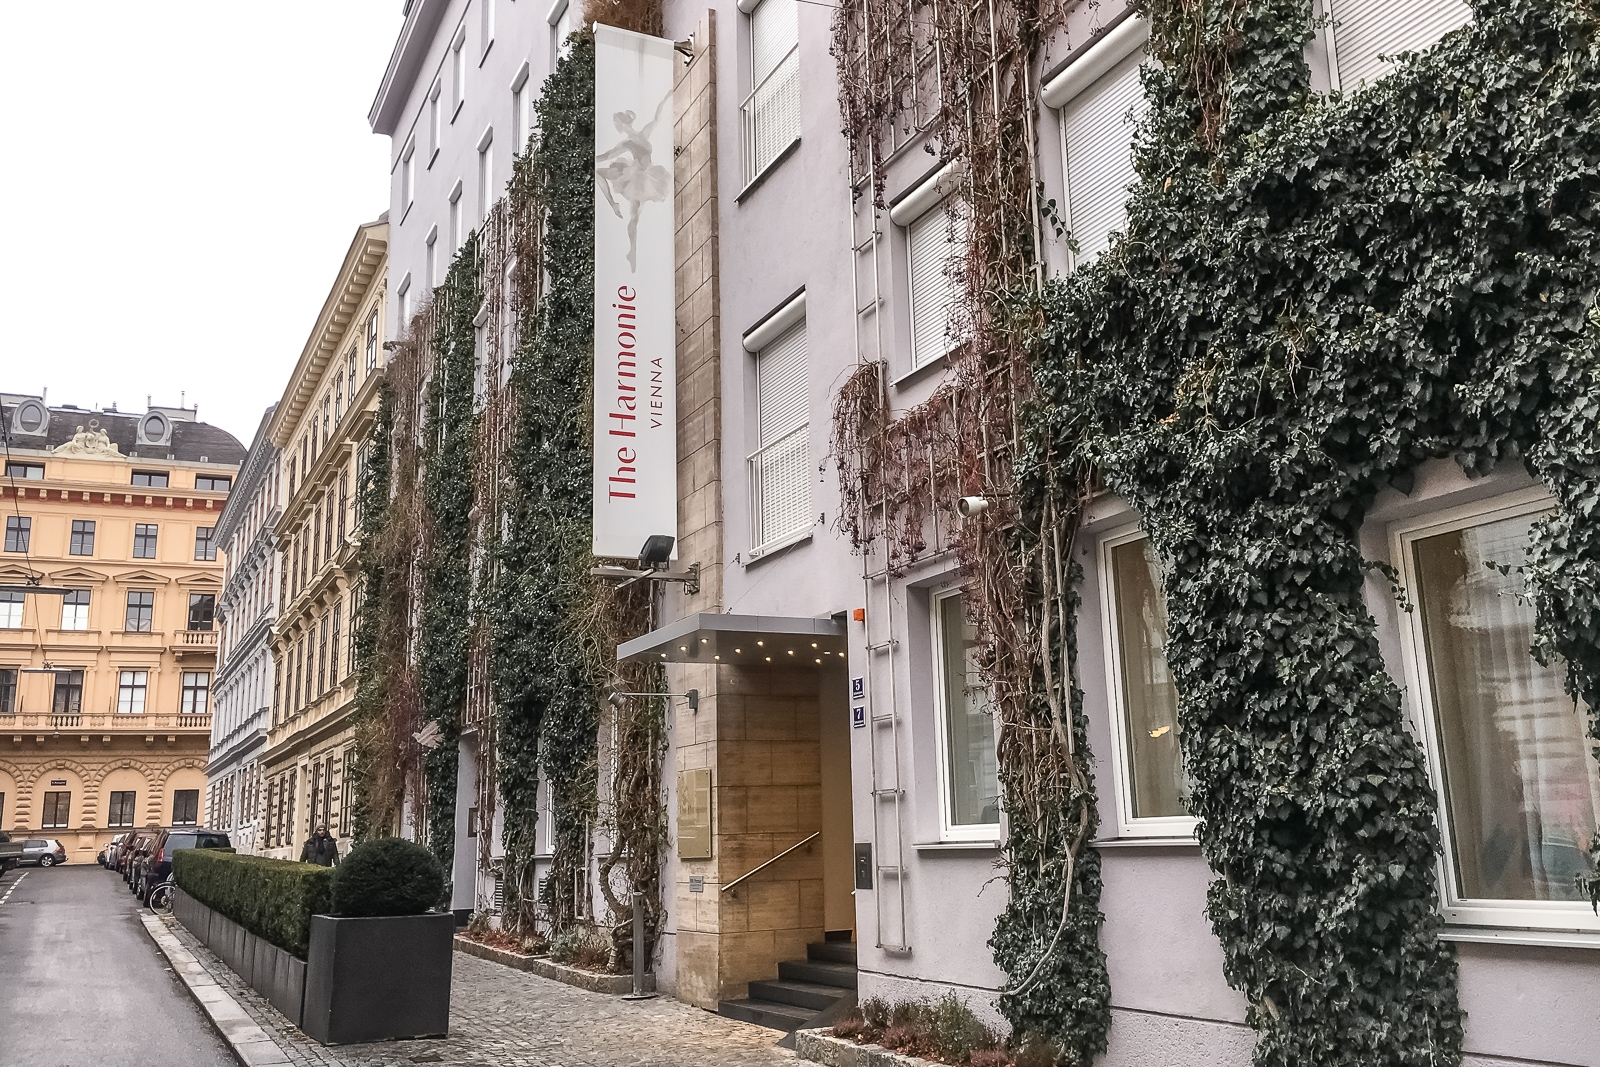 Hotel The Harmonie Vienna - Hotel Review - Hotelbewertung - Hotel in Wien - Hotel Empfehlung - Sightseeing Vienna - Hotel Tipp - Fashionladyloves by Tamara Wagner